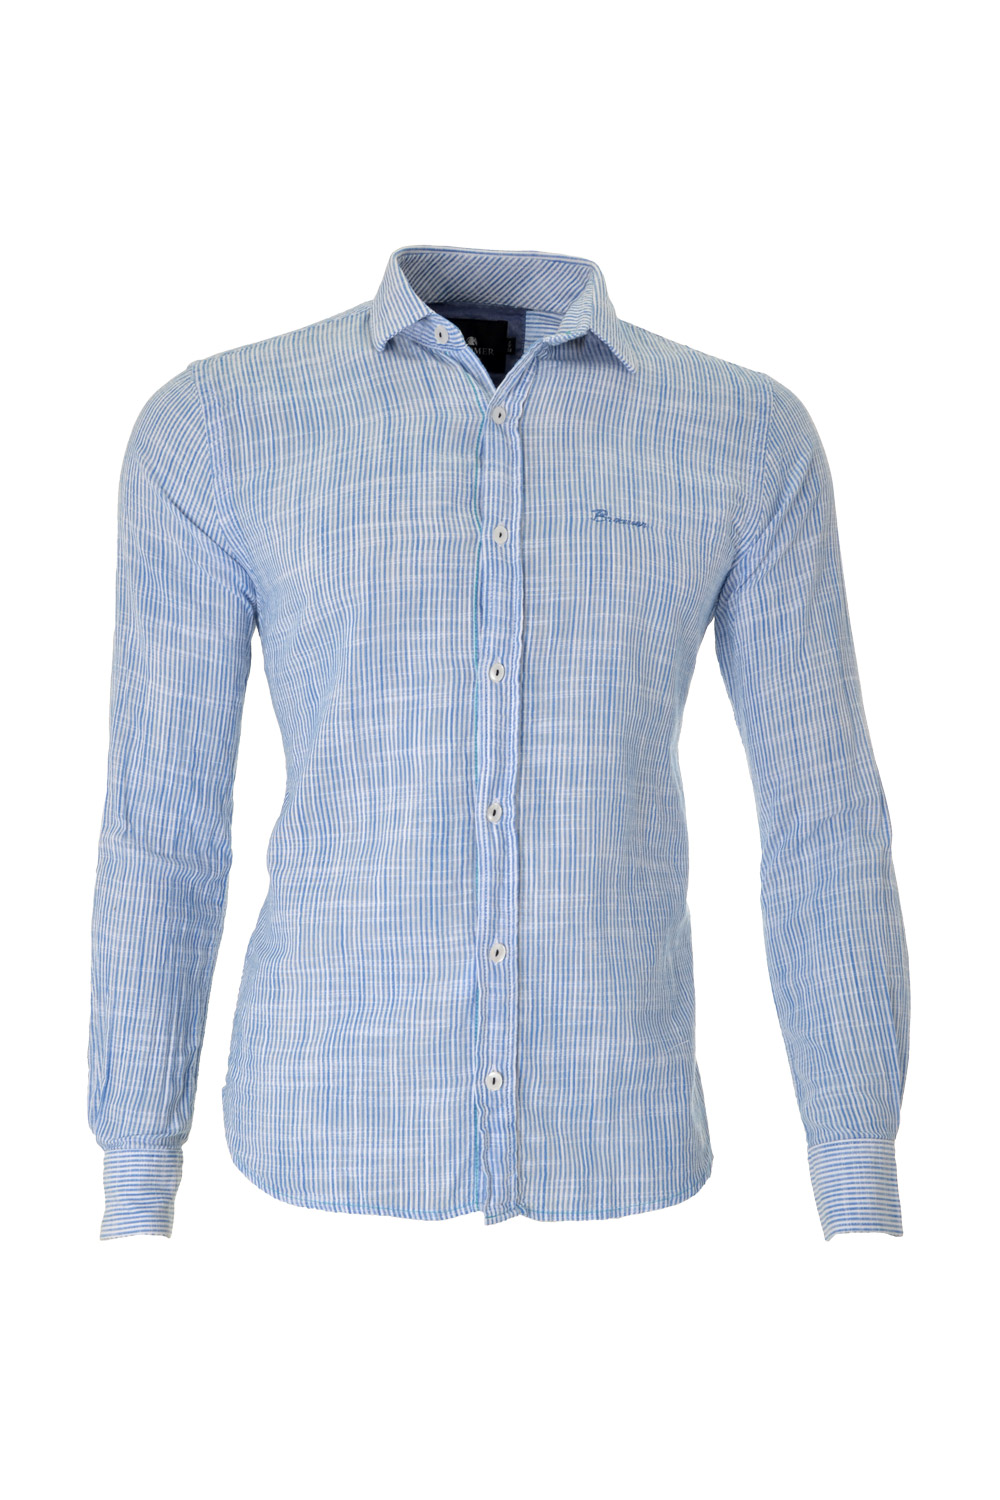 CAMISA ML BLUES ALGODAO TRENDY LISTRAS VISUAL LINHO